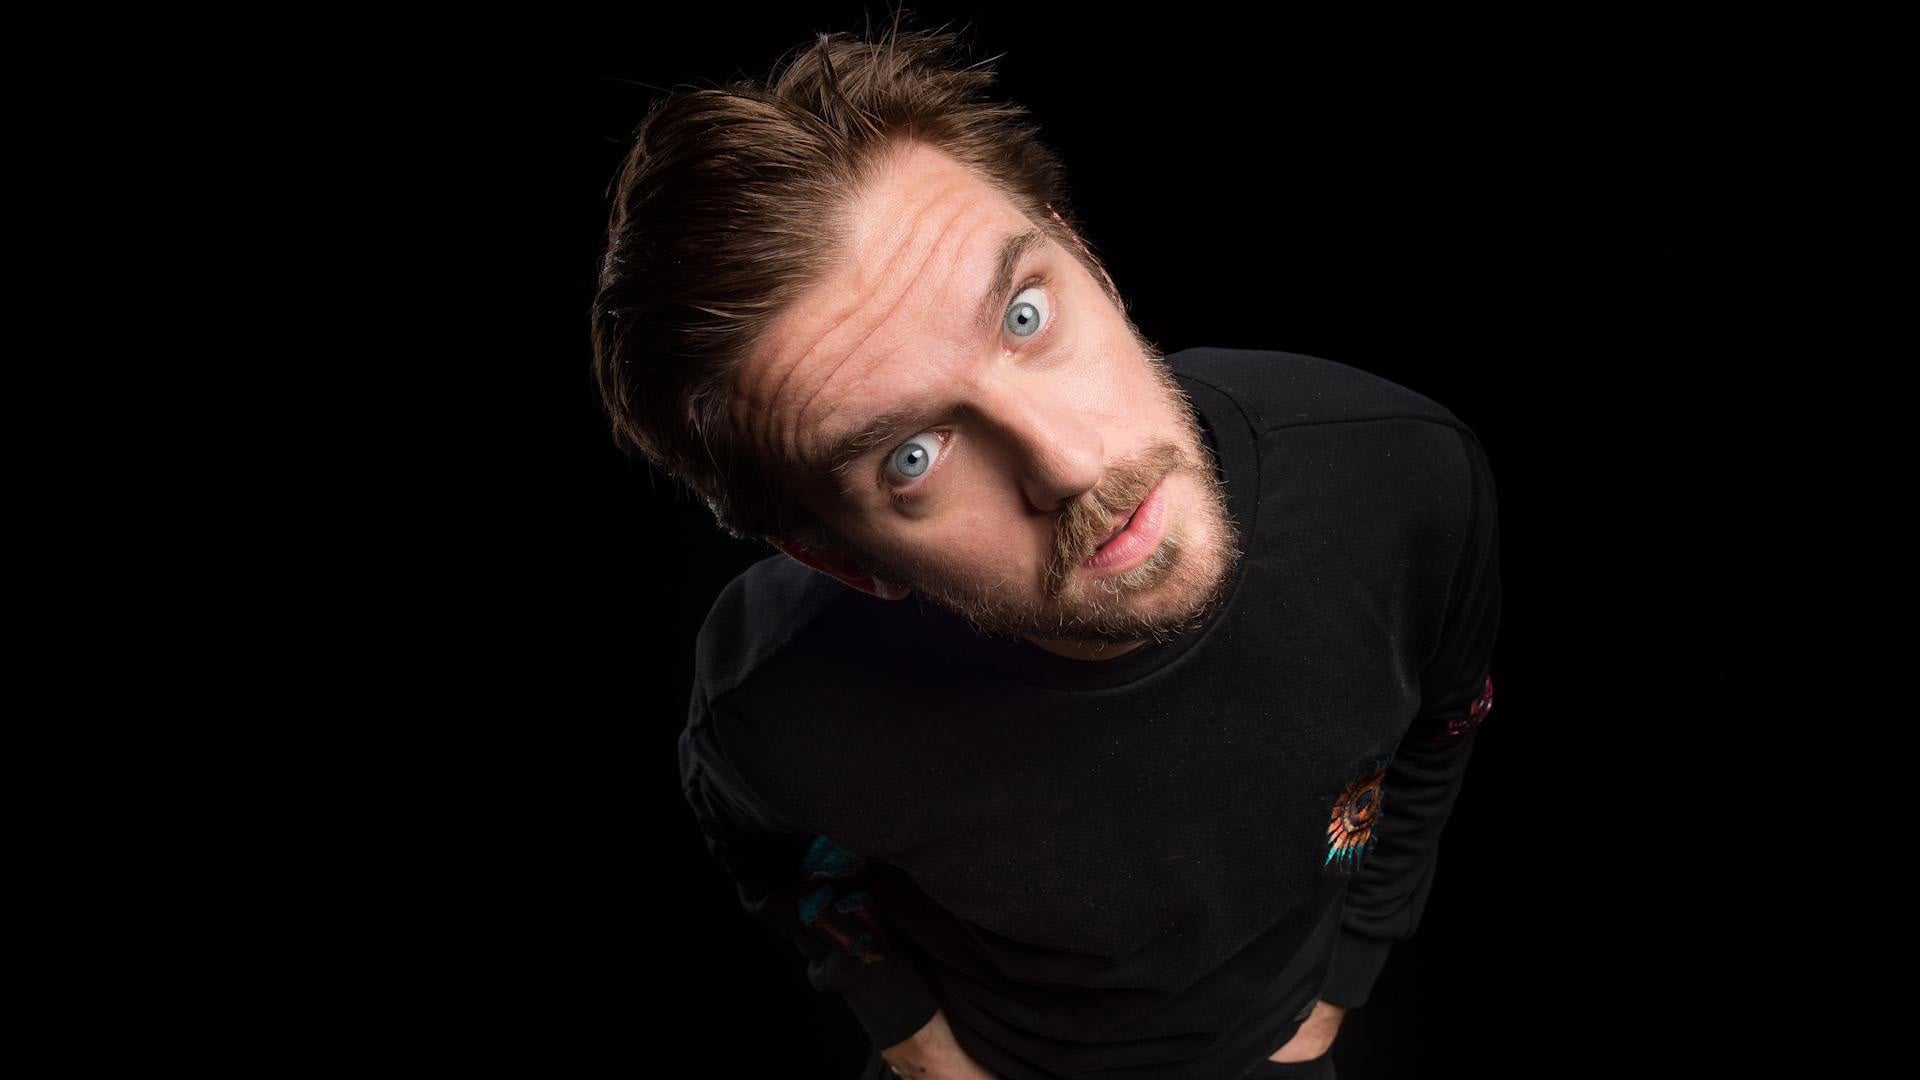 Dan Stevens Wallpapers hd